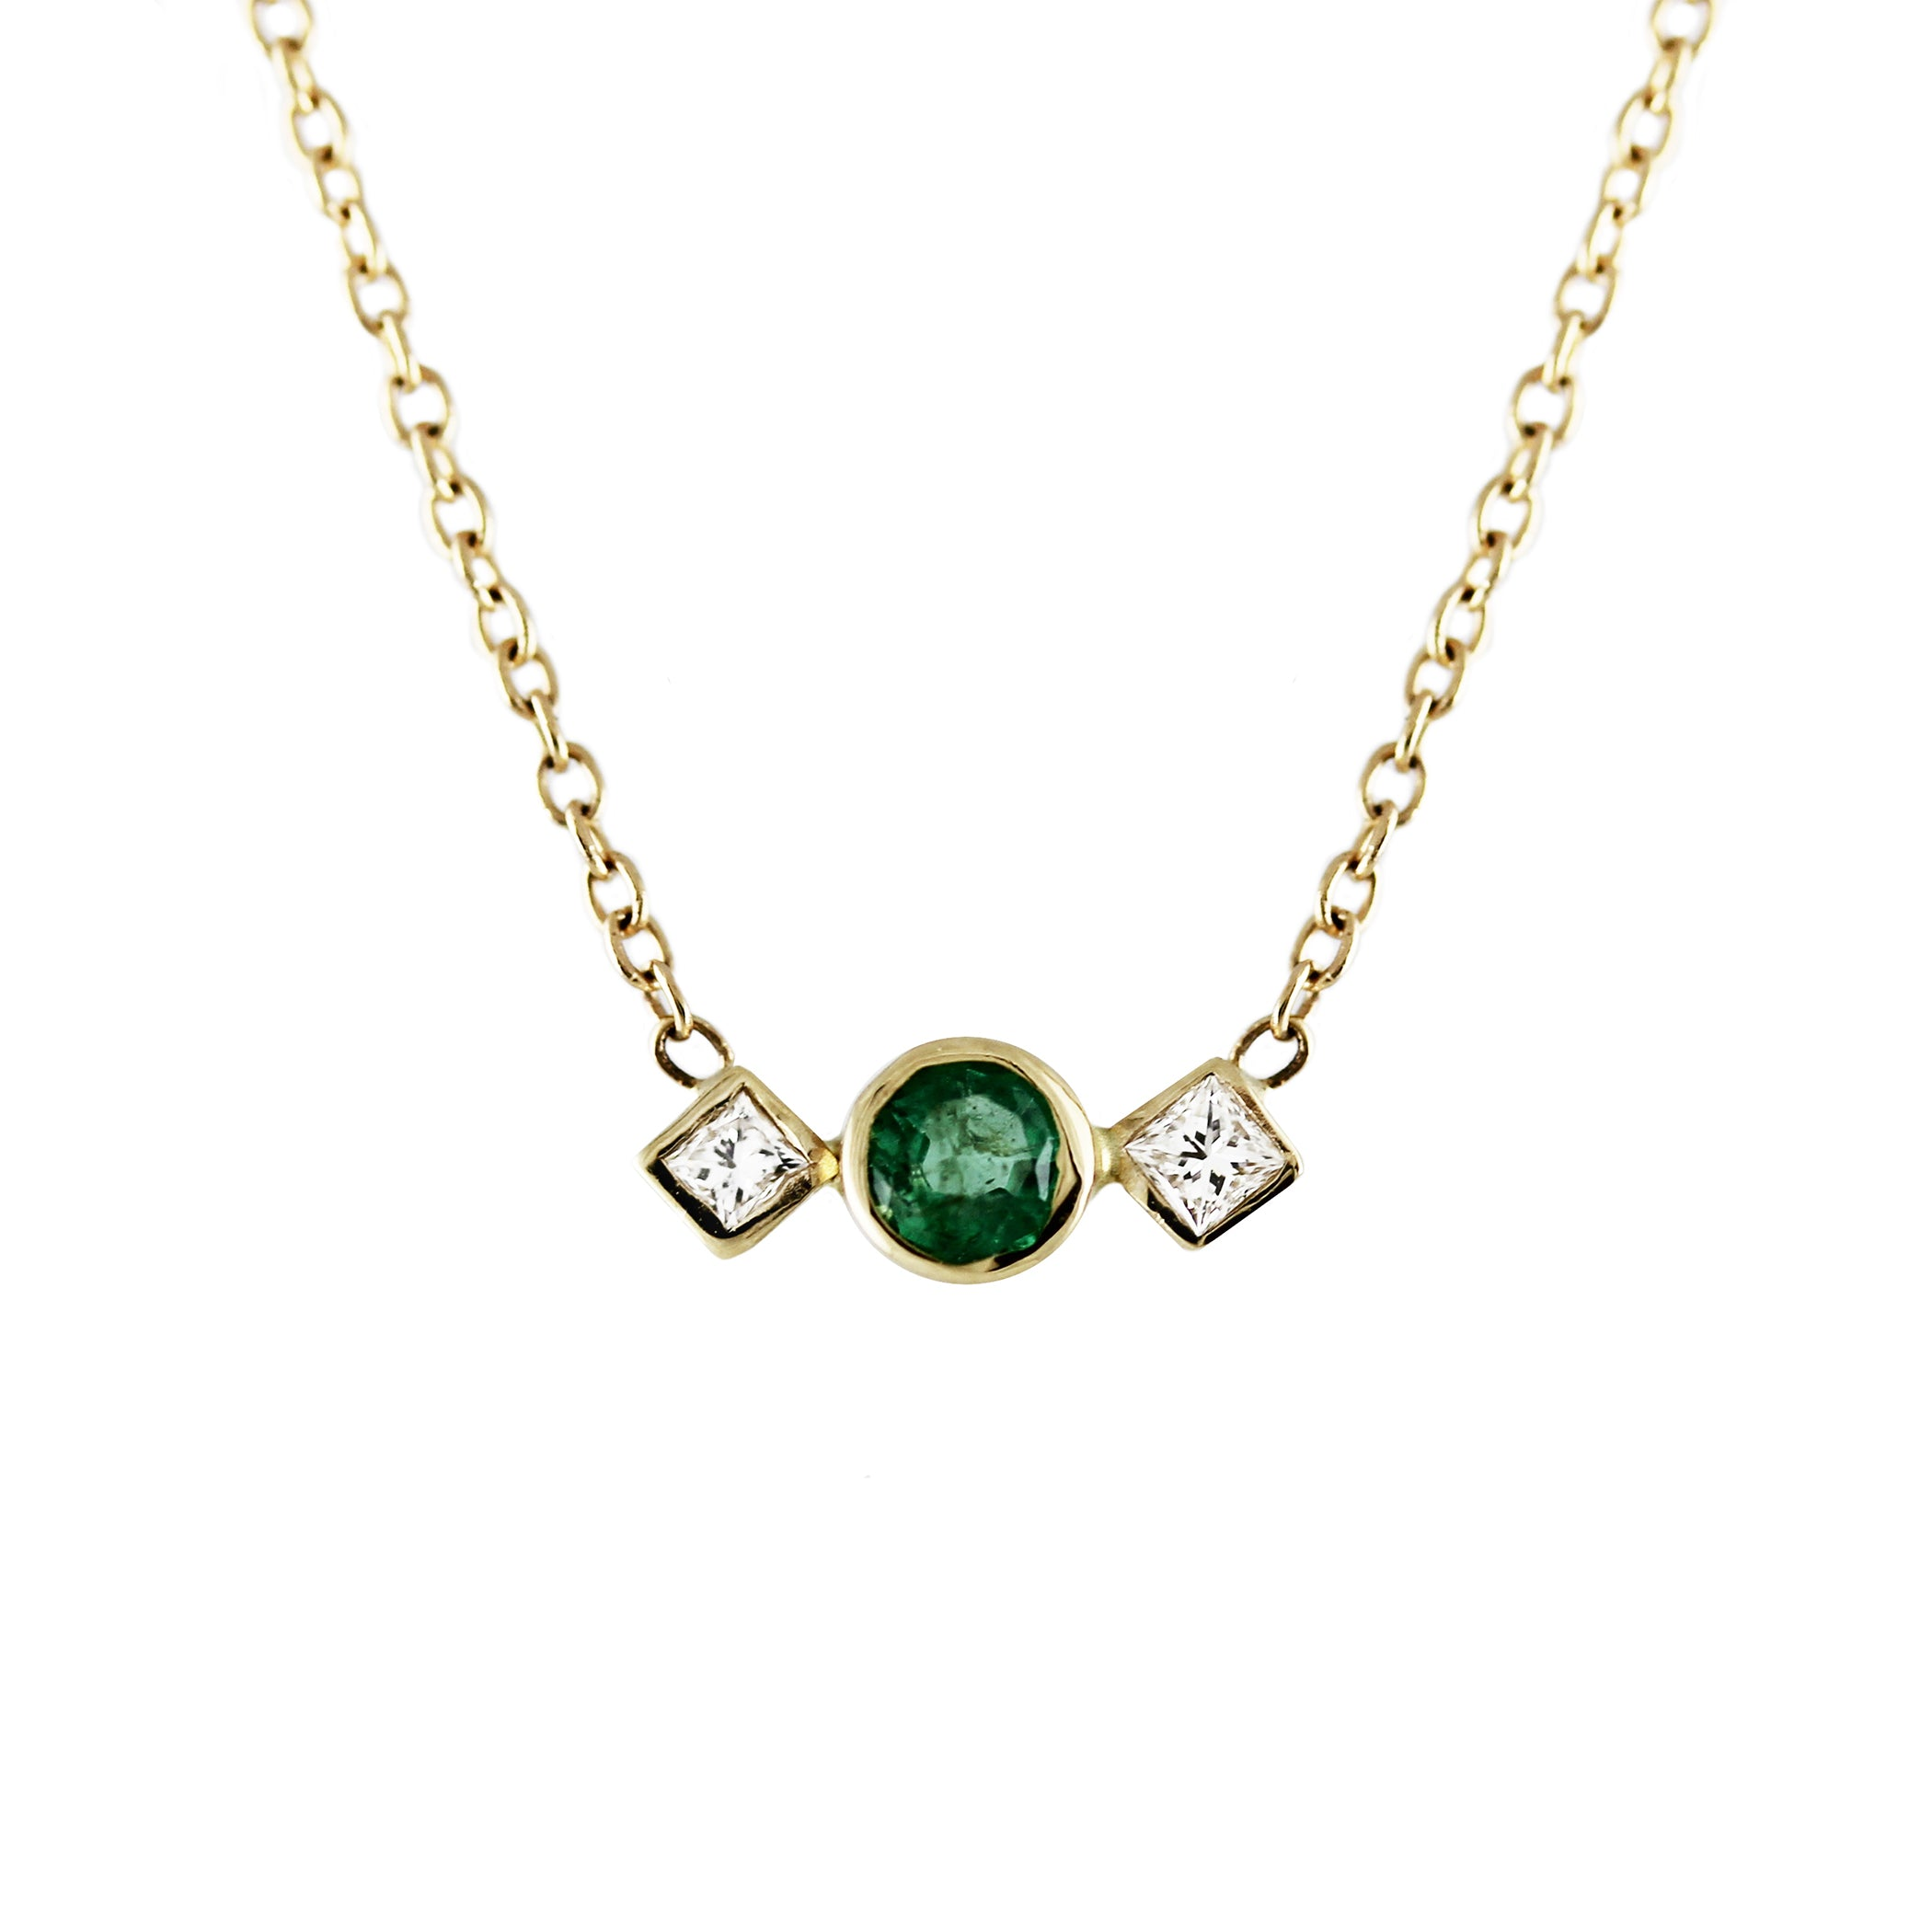 zambian variance inc small emerald necklace shop cheng a pendant